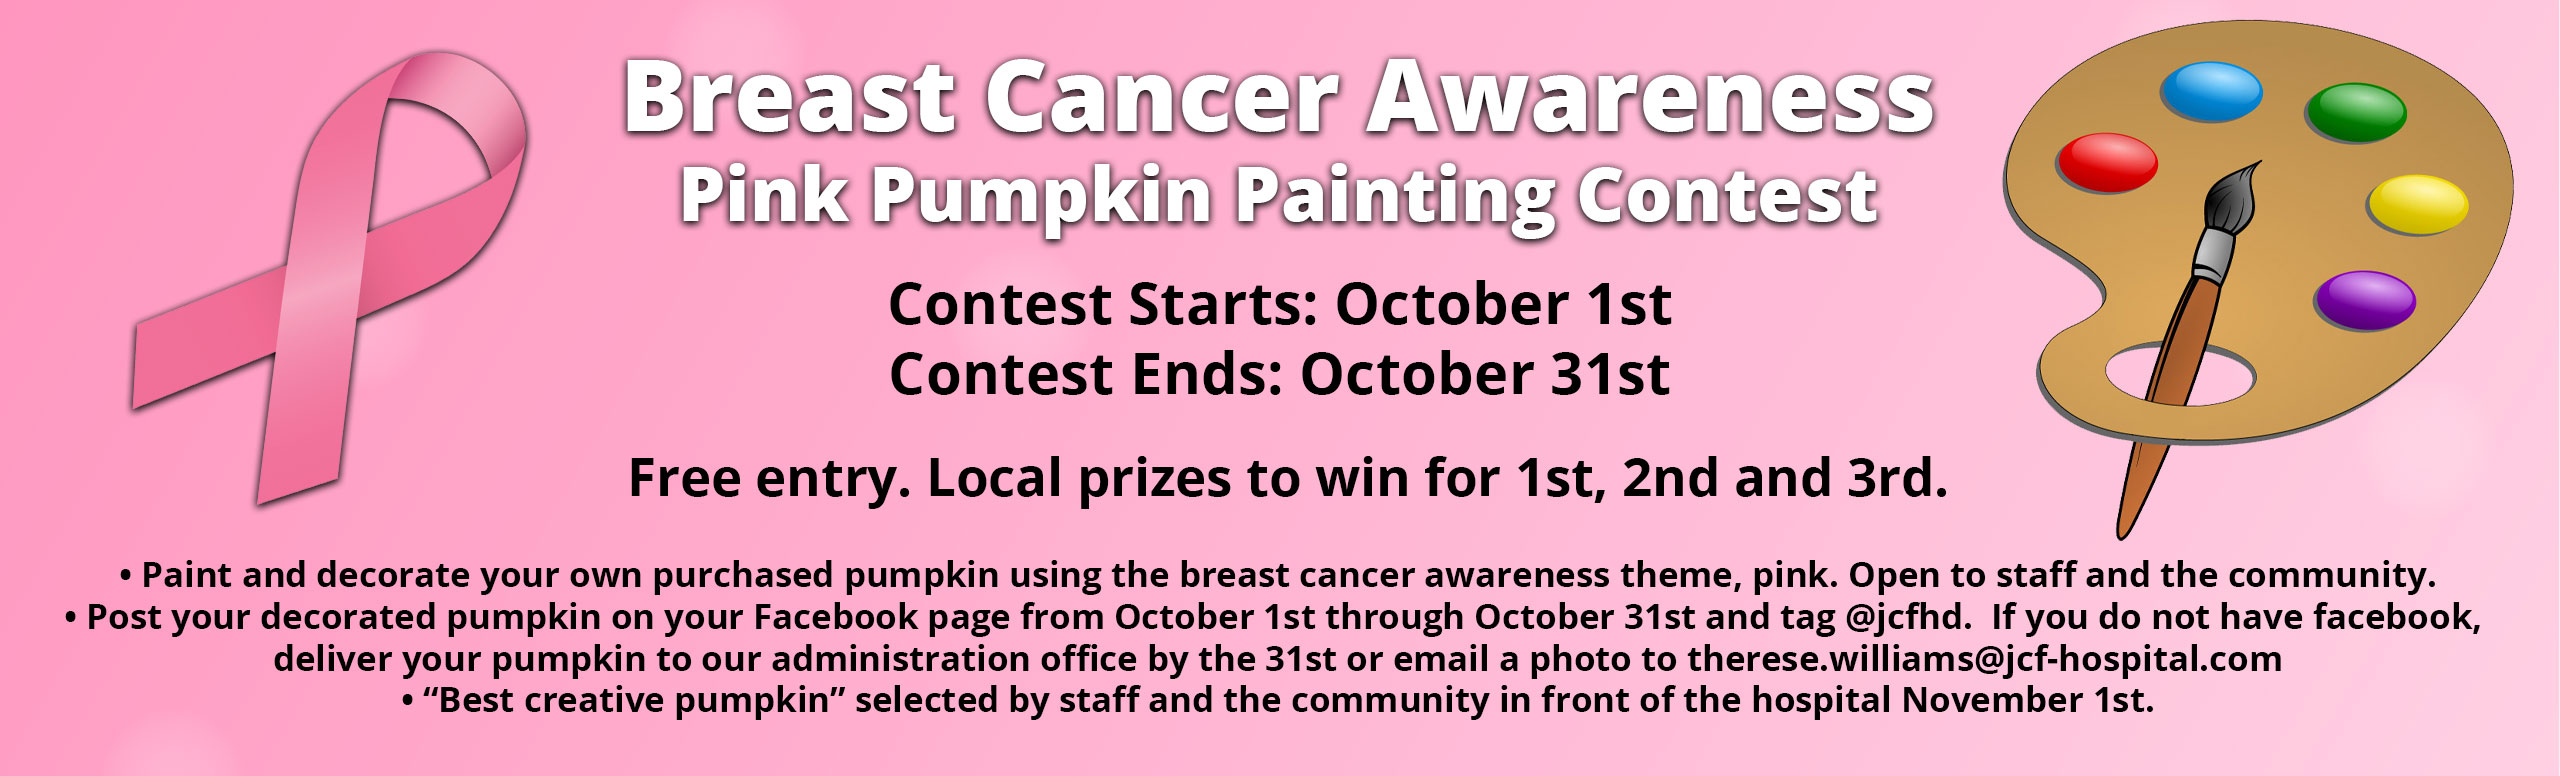 """Banner picture of paint and a paint brush and a ribbon for Breast Cancer. Banner says: BREAST CANCER AWARENESS  Pink Pumpkin Painting Contest Contest Starts: October 1st Contest Ends: October 31st  Free entry. Local prizes to win for 1st, 2nd, and 3rd. *Paint and decorate your own purchased pumpkin using the breast cancer awareness theme, pink. Open to staff and the community. *Post your decorated pumpkin on your Facebook page from October 1st through October 31st and tag @jcfhd. If you do not have facebook, deliver your pumpkin to our administration office by the 31st or e-mail a photo to therese.williams@jcf-hospital.com  * """"Best creative pumpkin"""" selected by staff and the community in front of the hospital November 1st."""